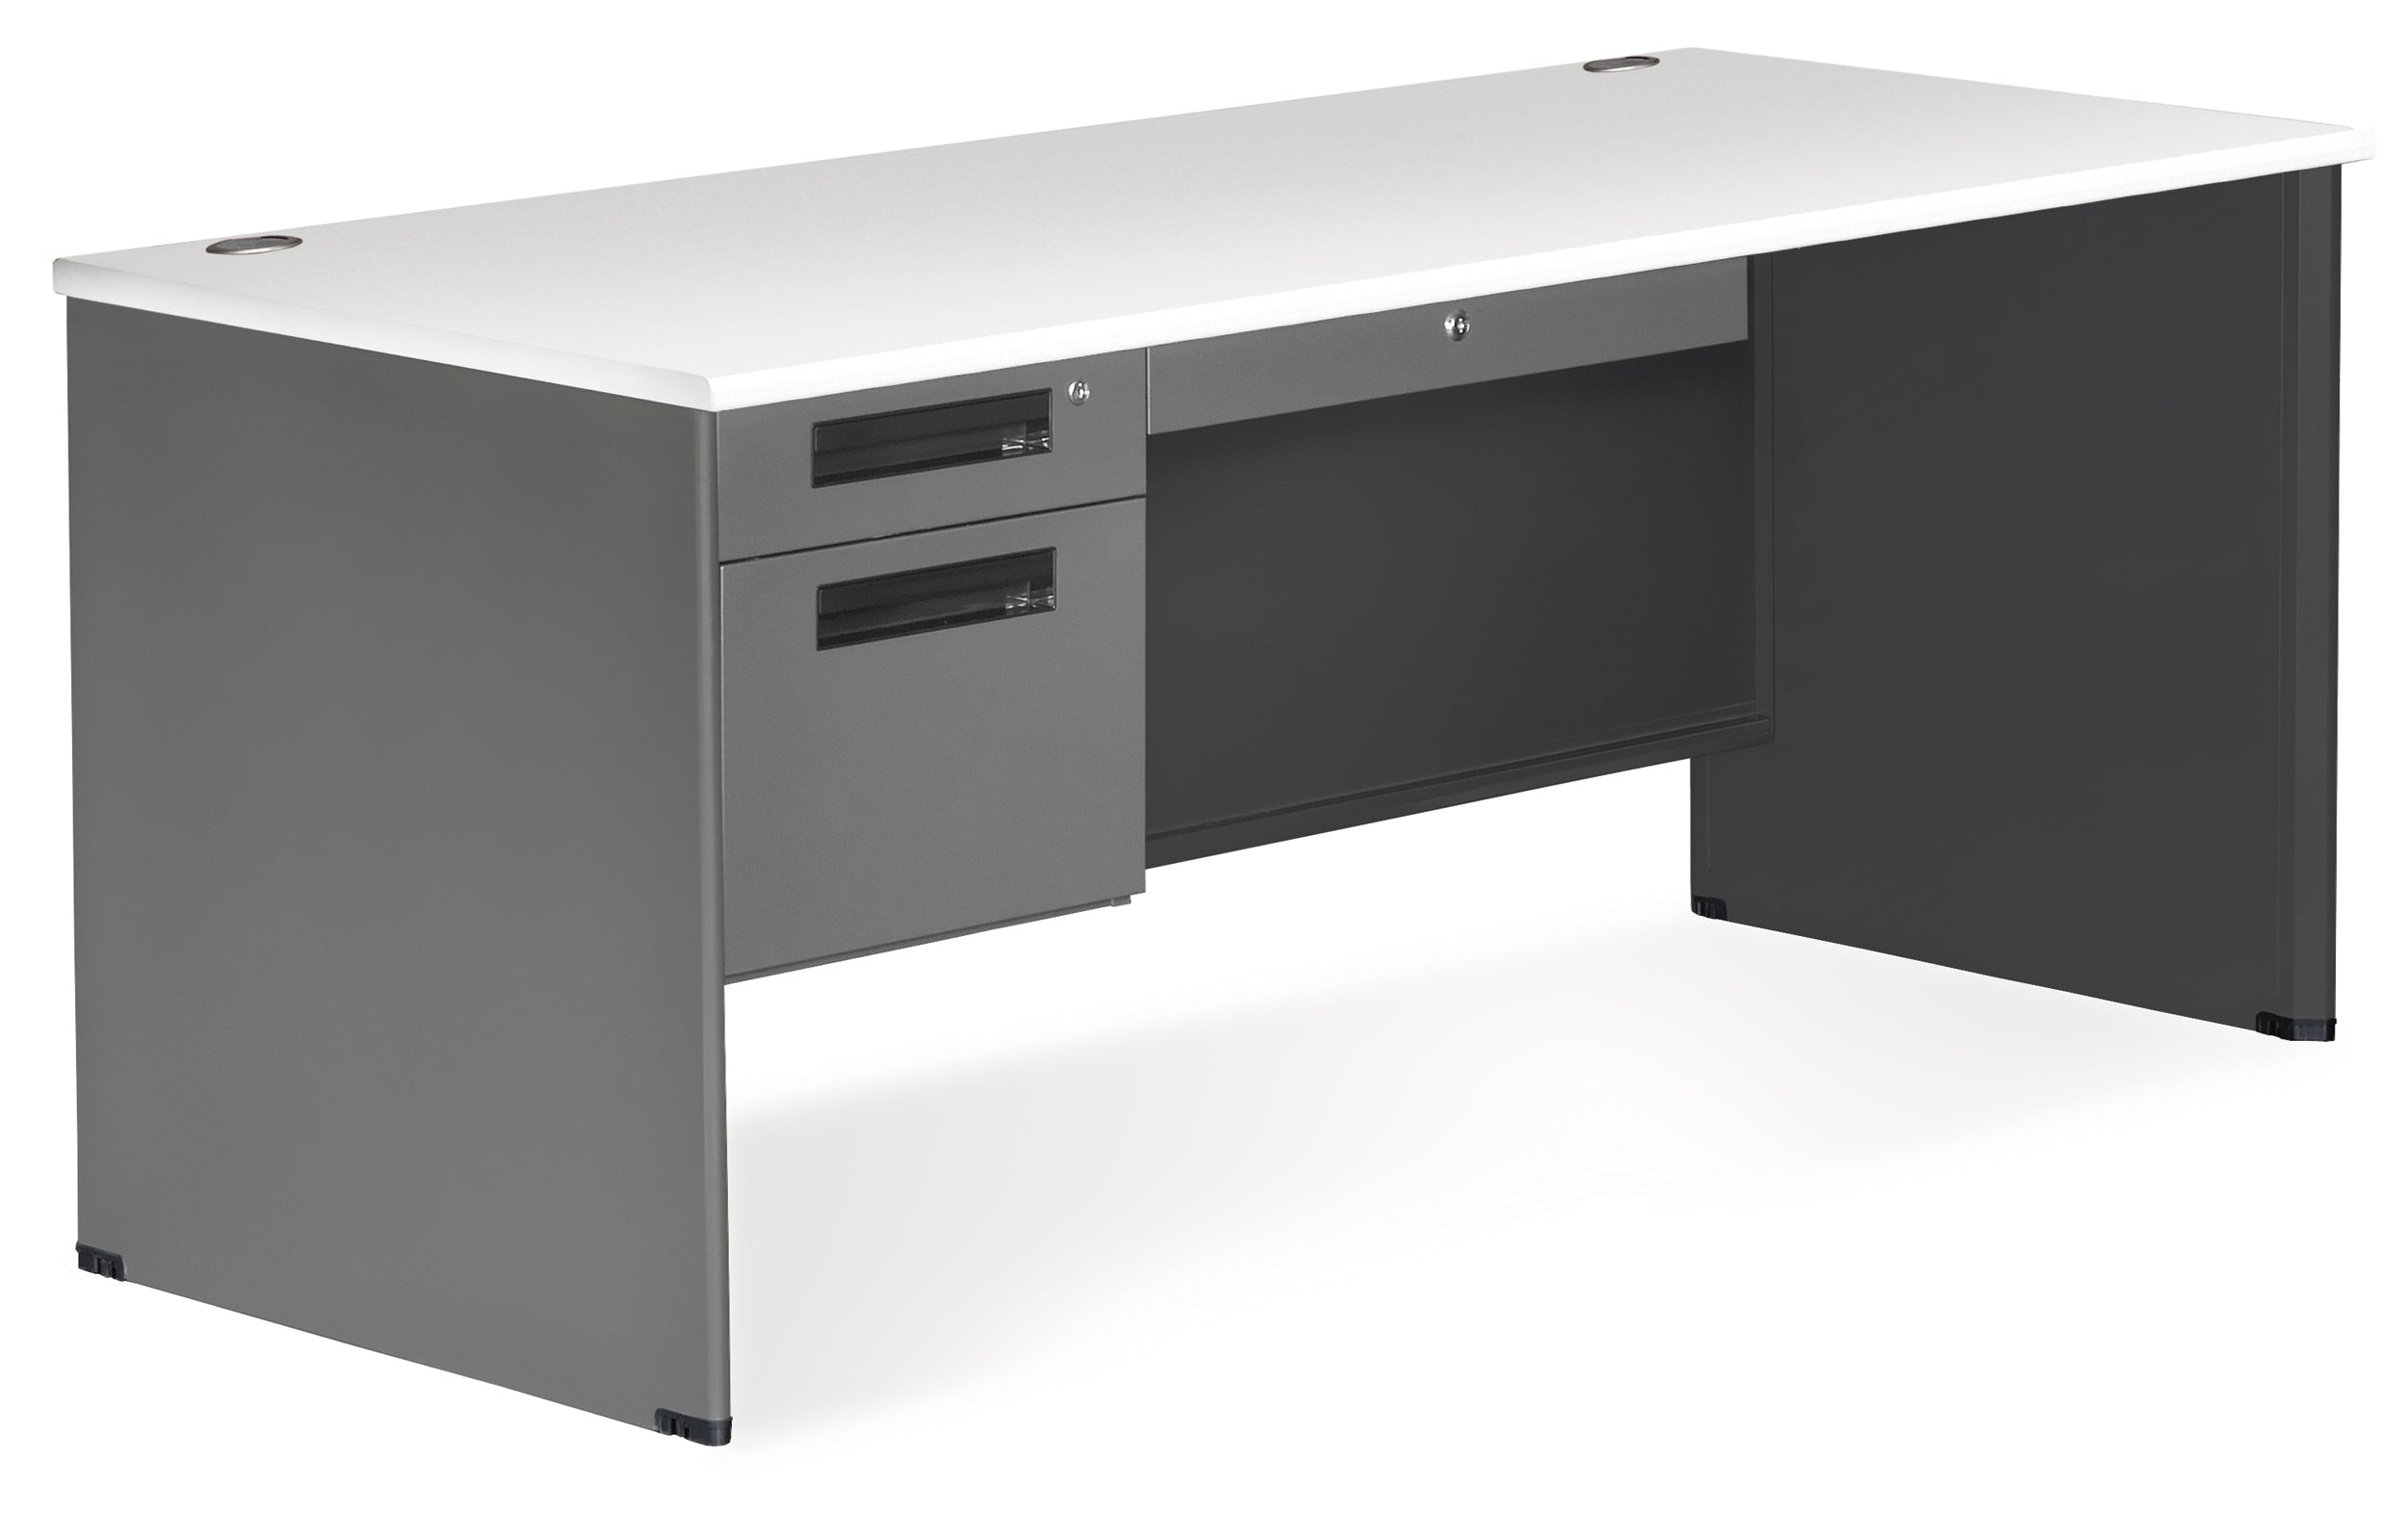 "Model 77366 Executive Series 3-Drawer Single Pedestal Desk, 30"" x 67"""